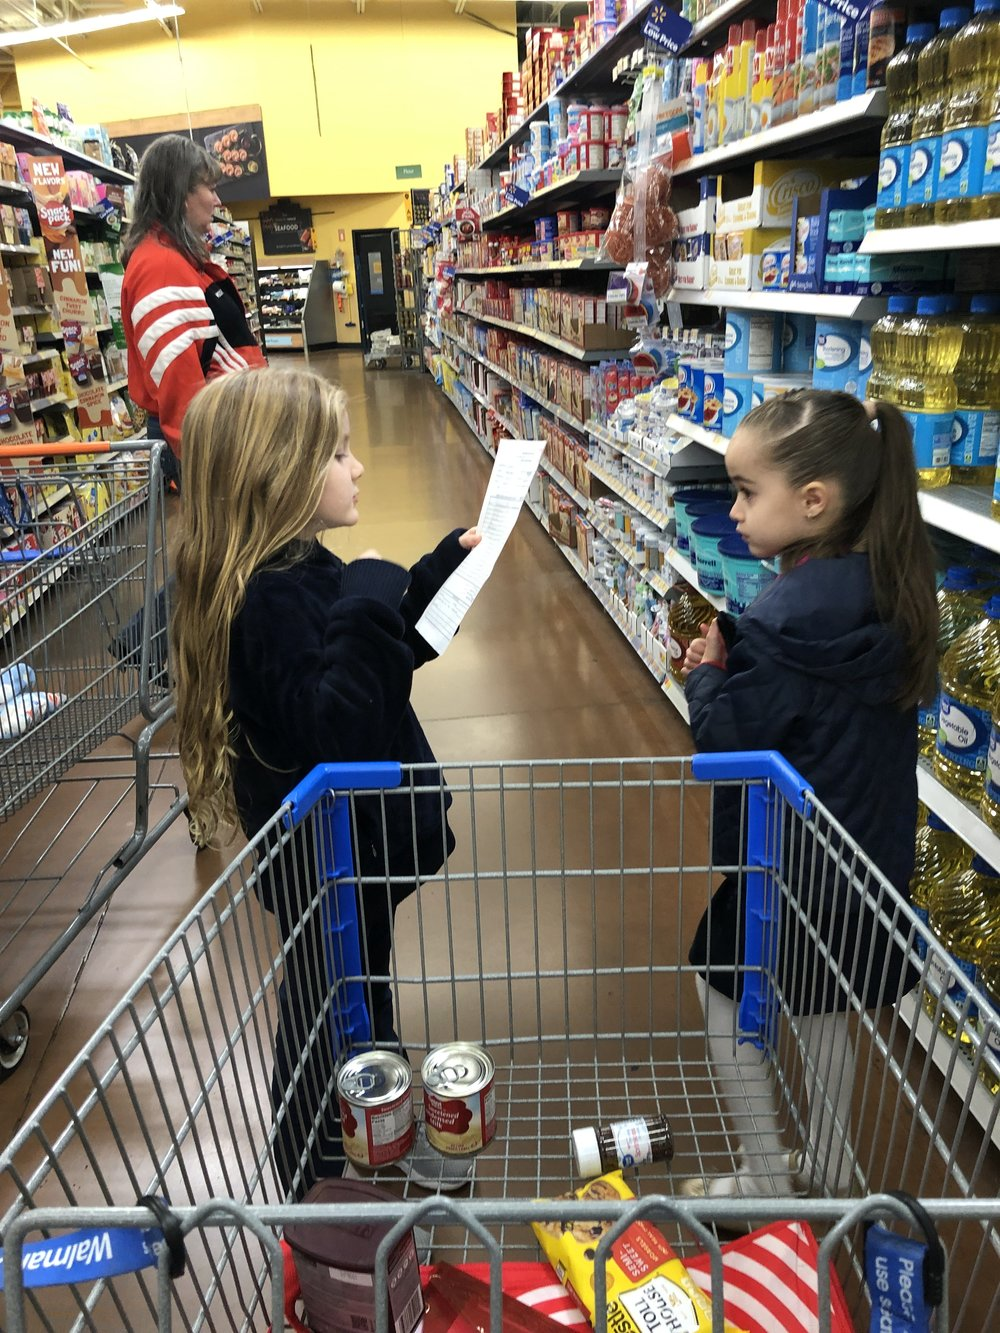 Going out: shopping with a list